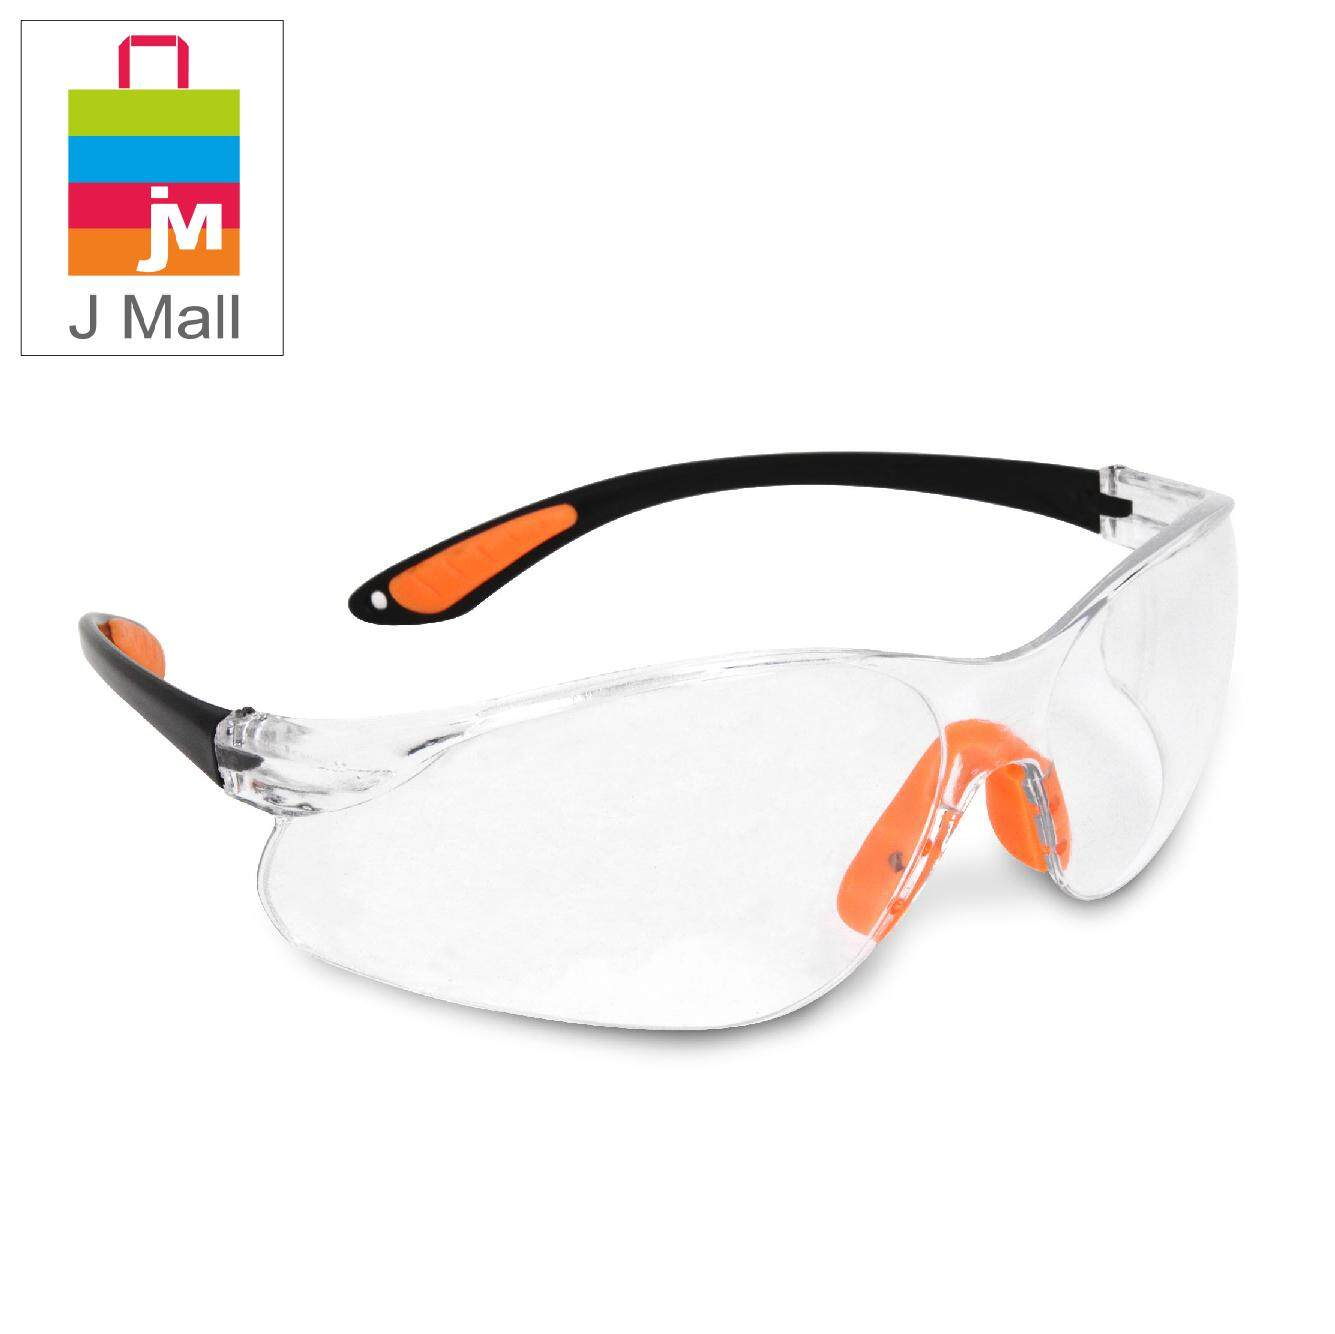 New Safety Eye Protection PPE Glasses Goggle Spec (170) Clear